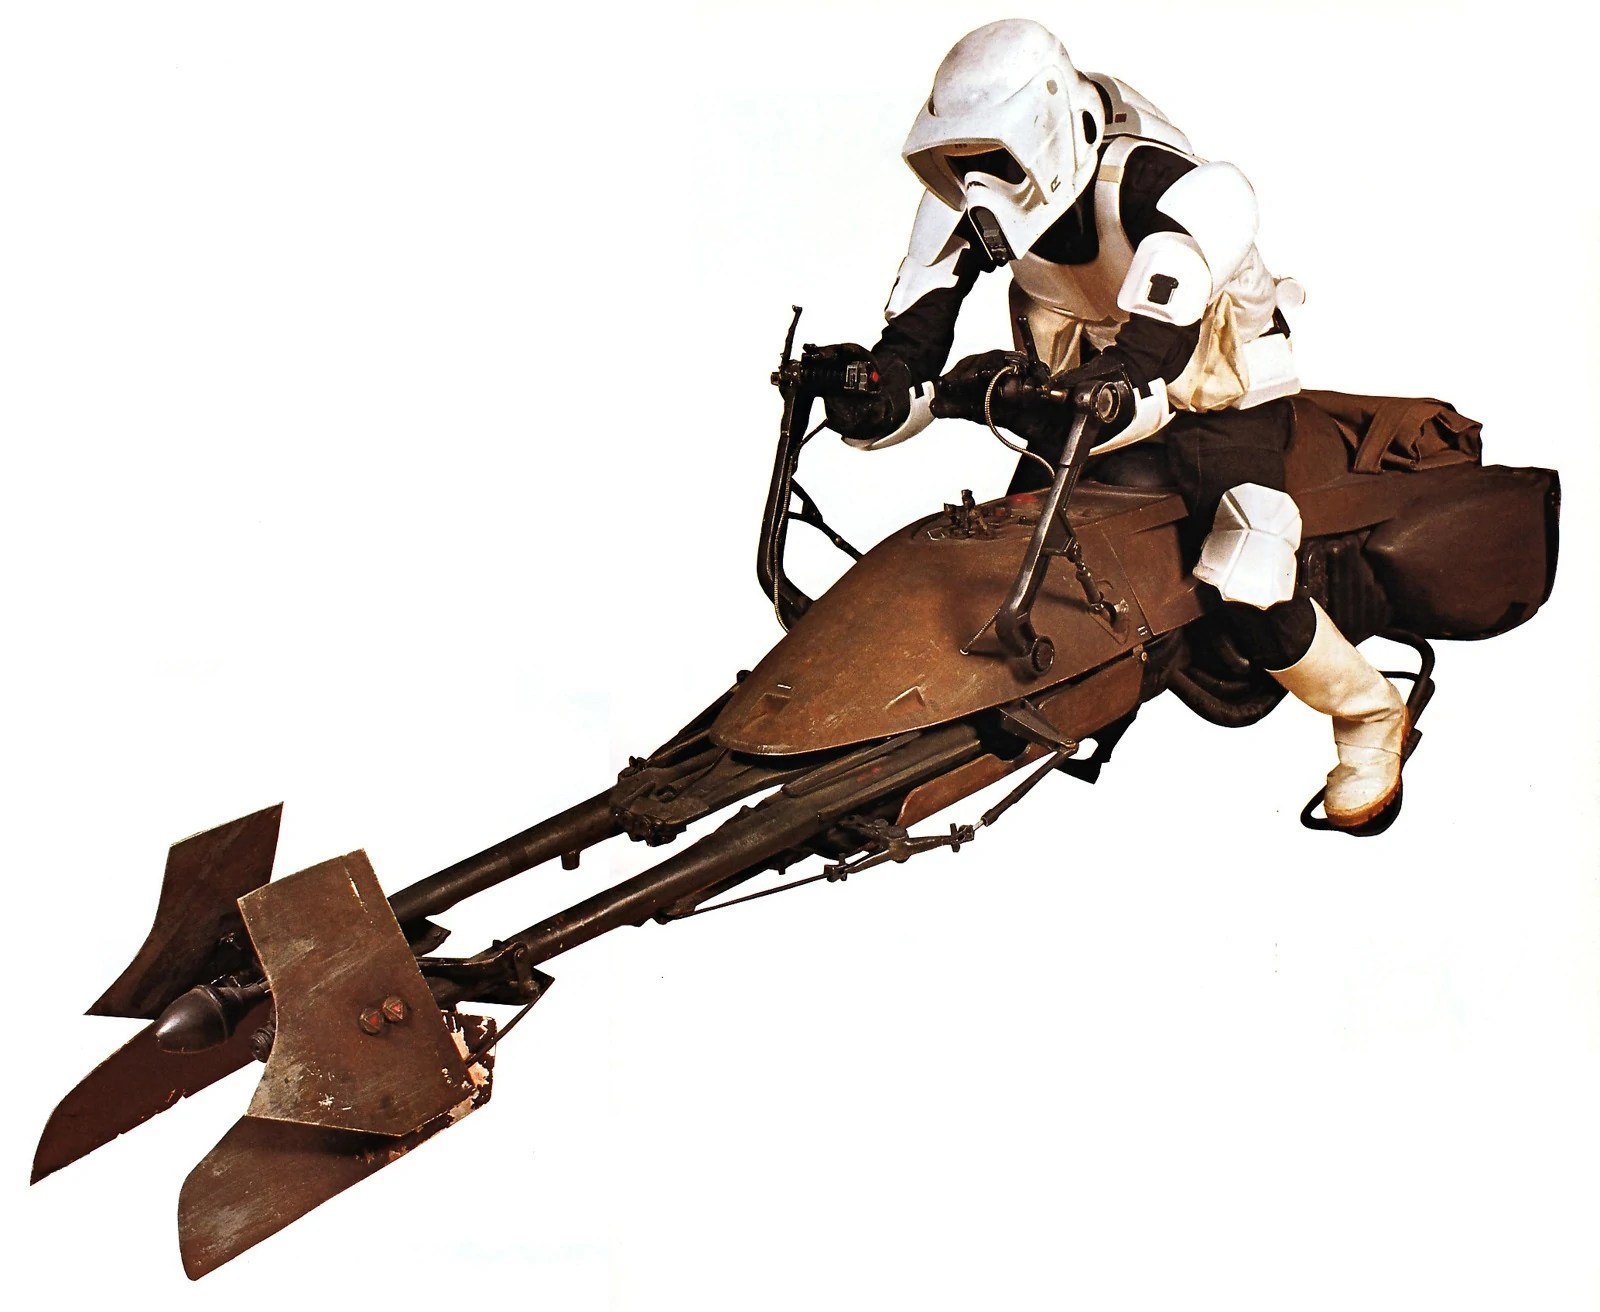 74 z speeder bike wookieepedia the star wars wiki